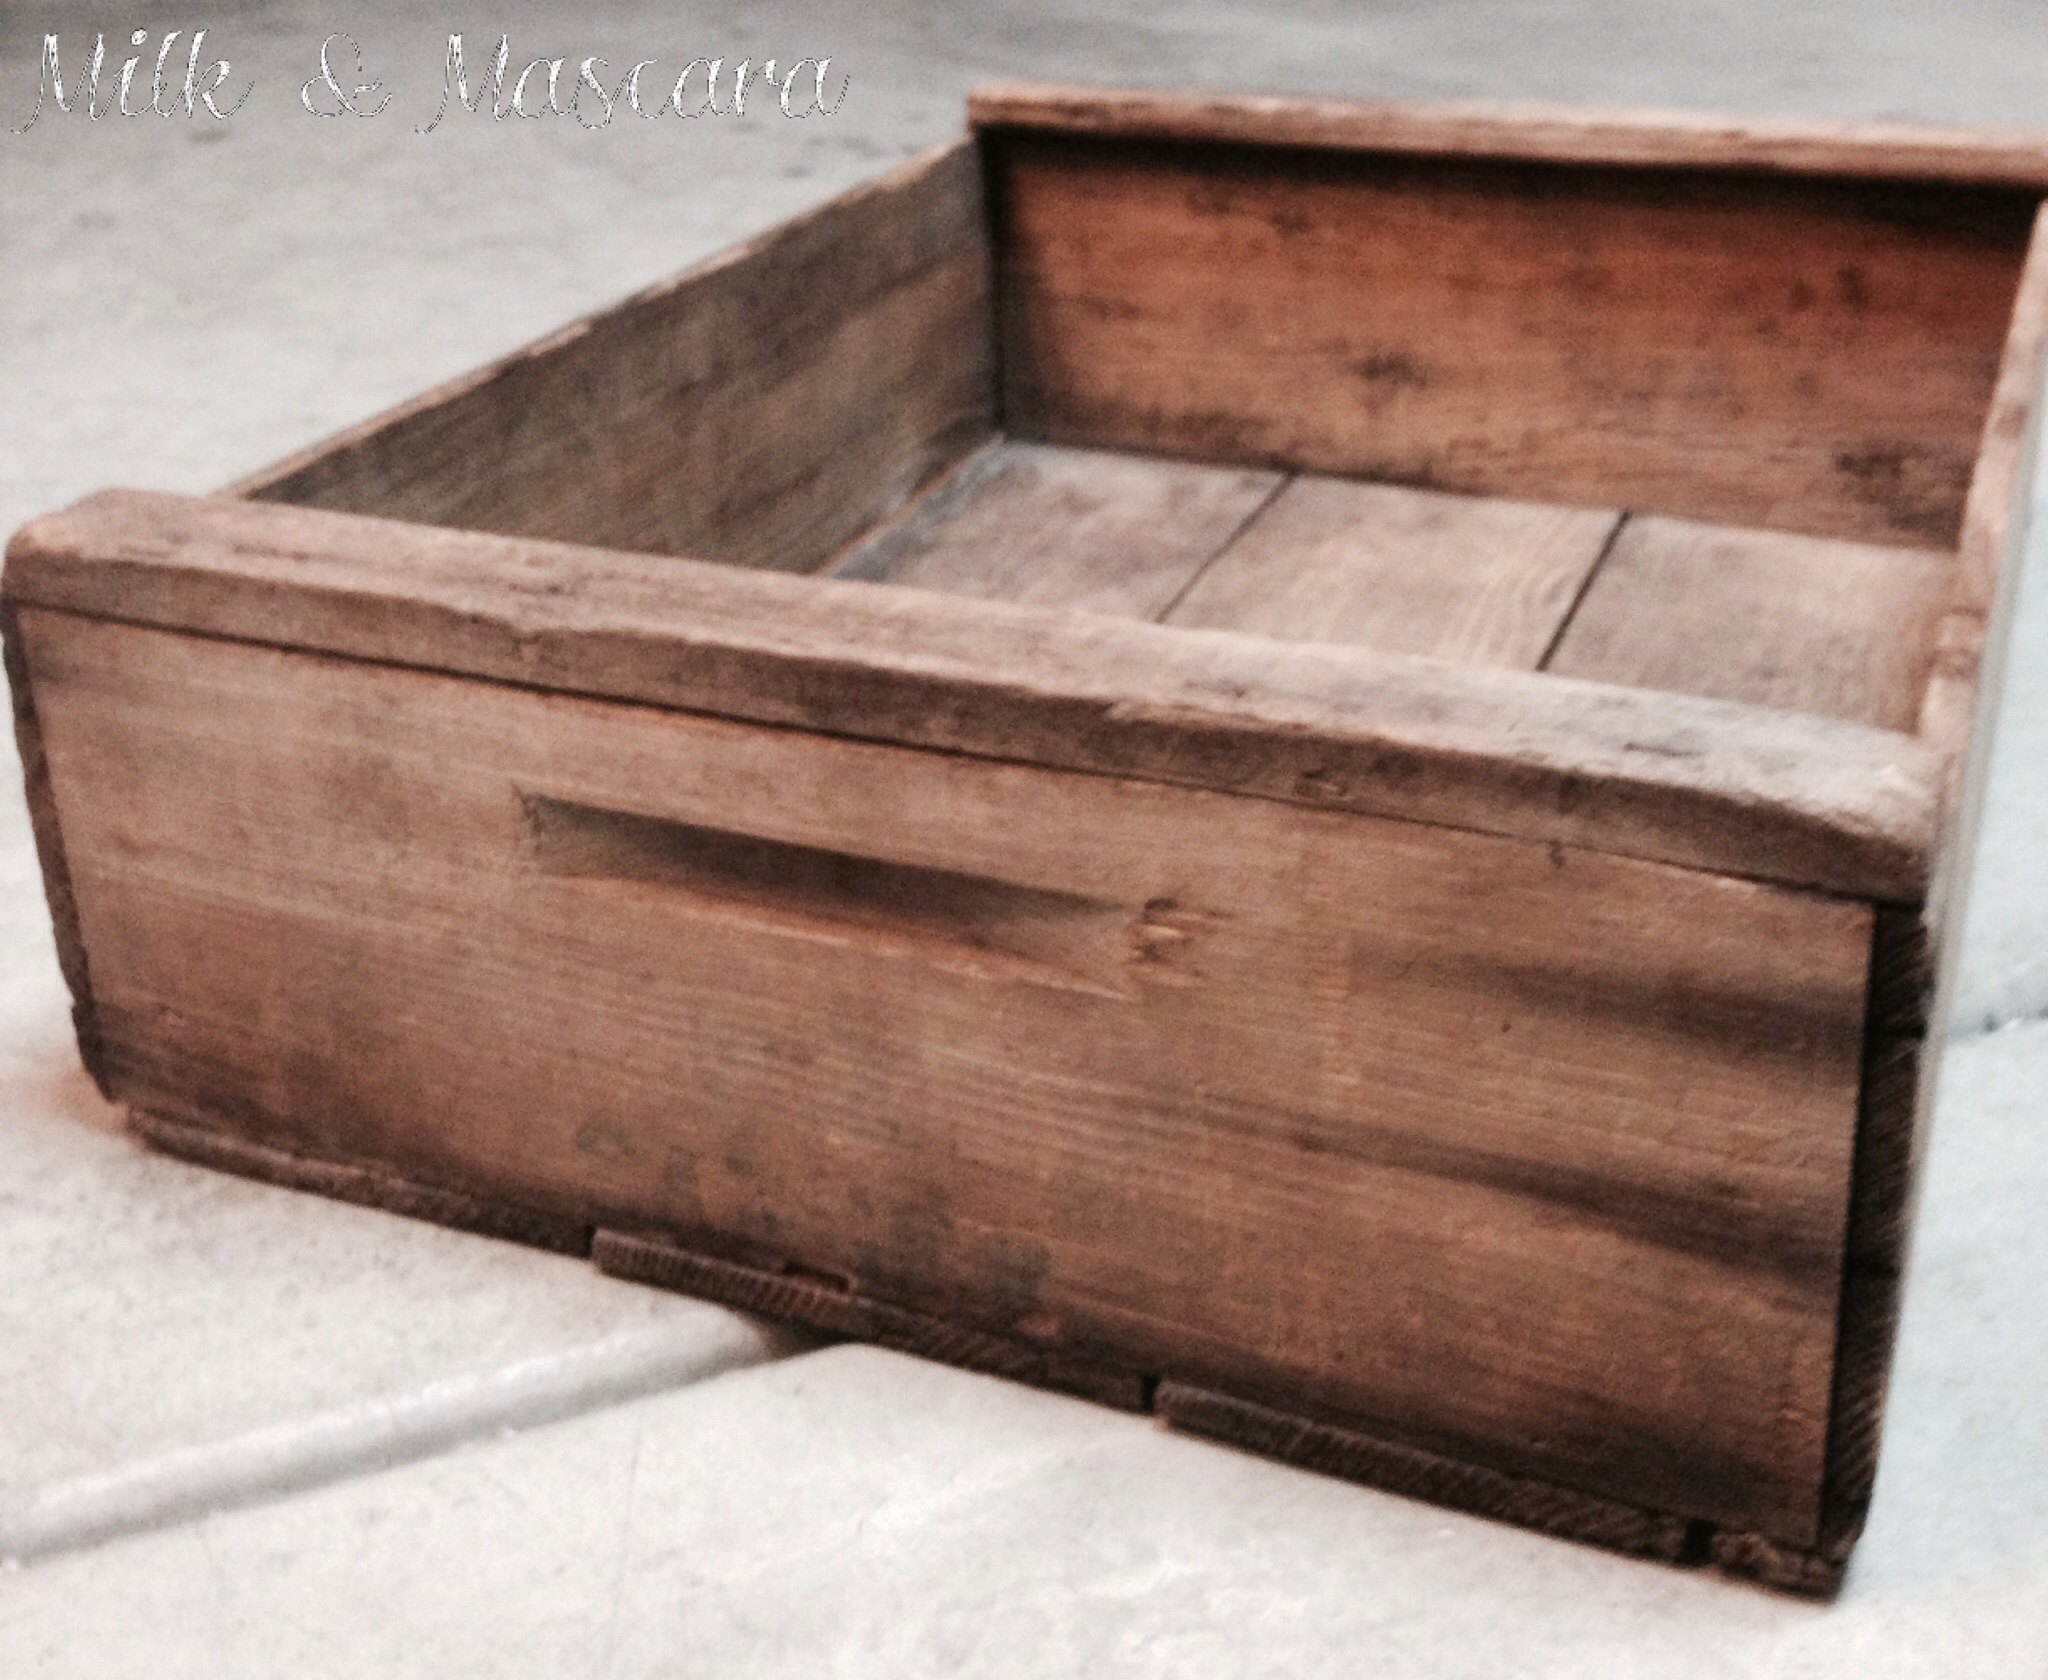 diy rustic wooden crate toy box